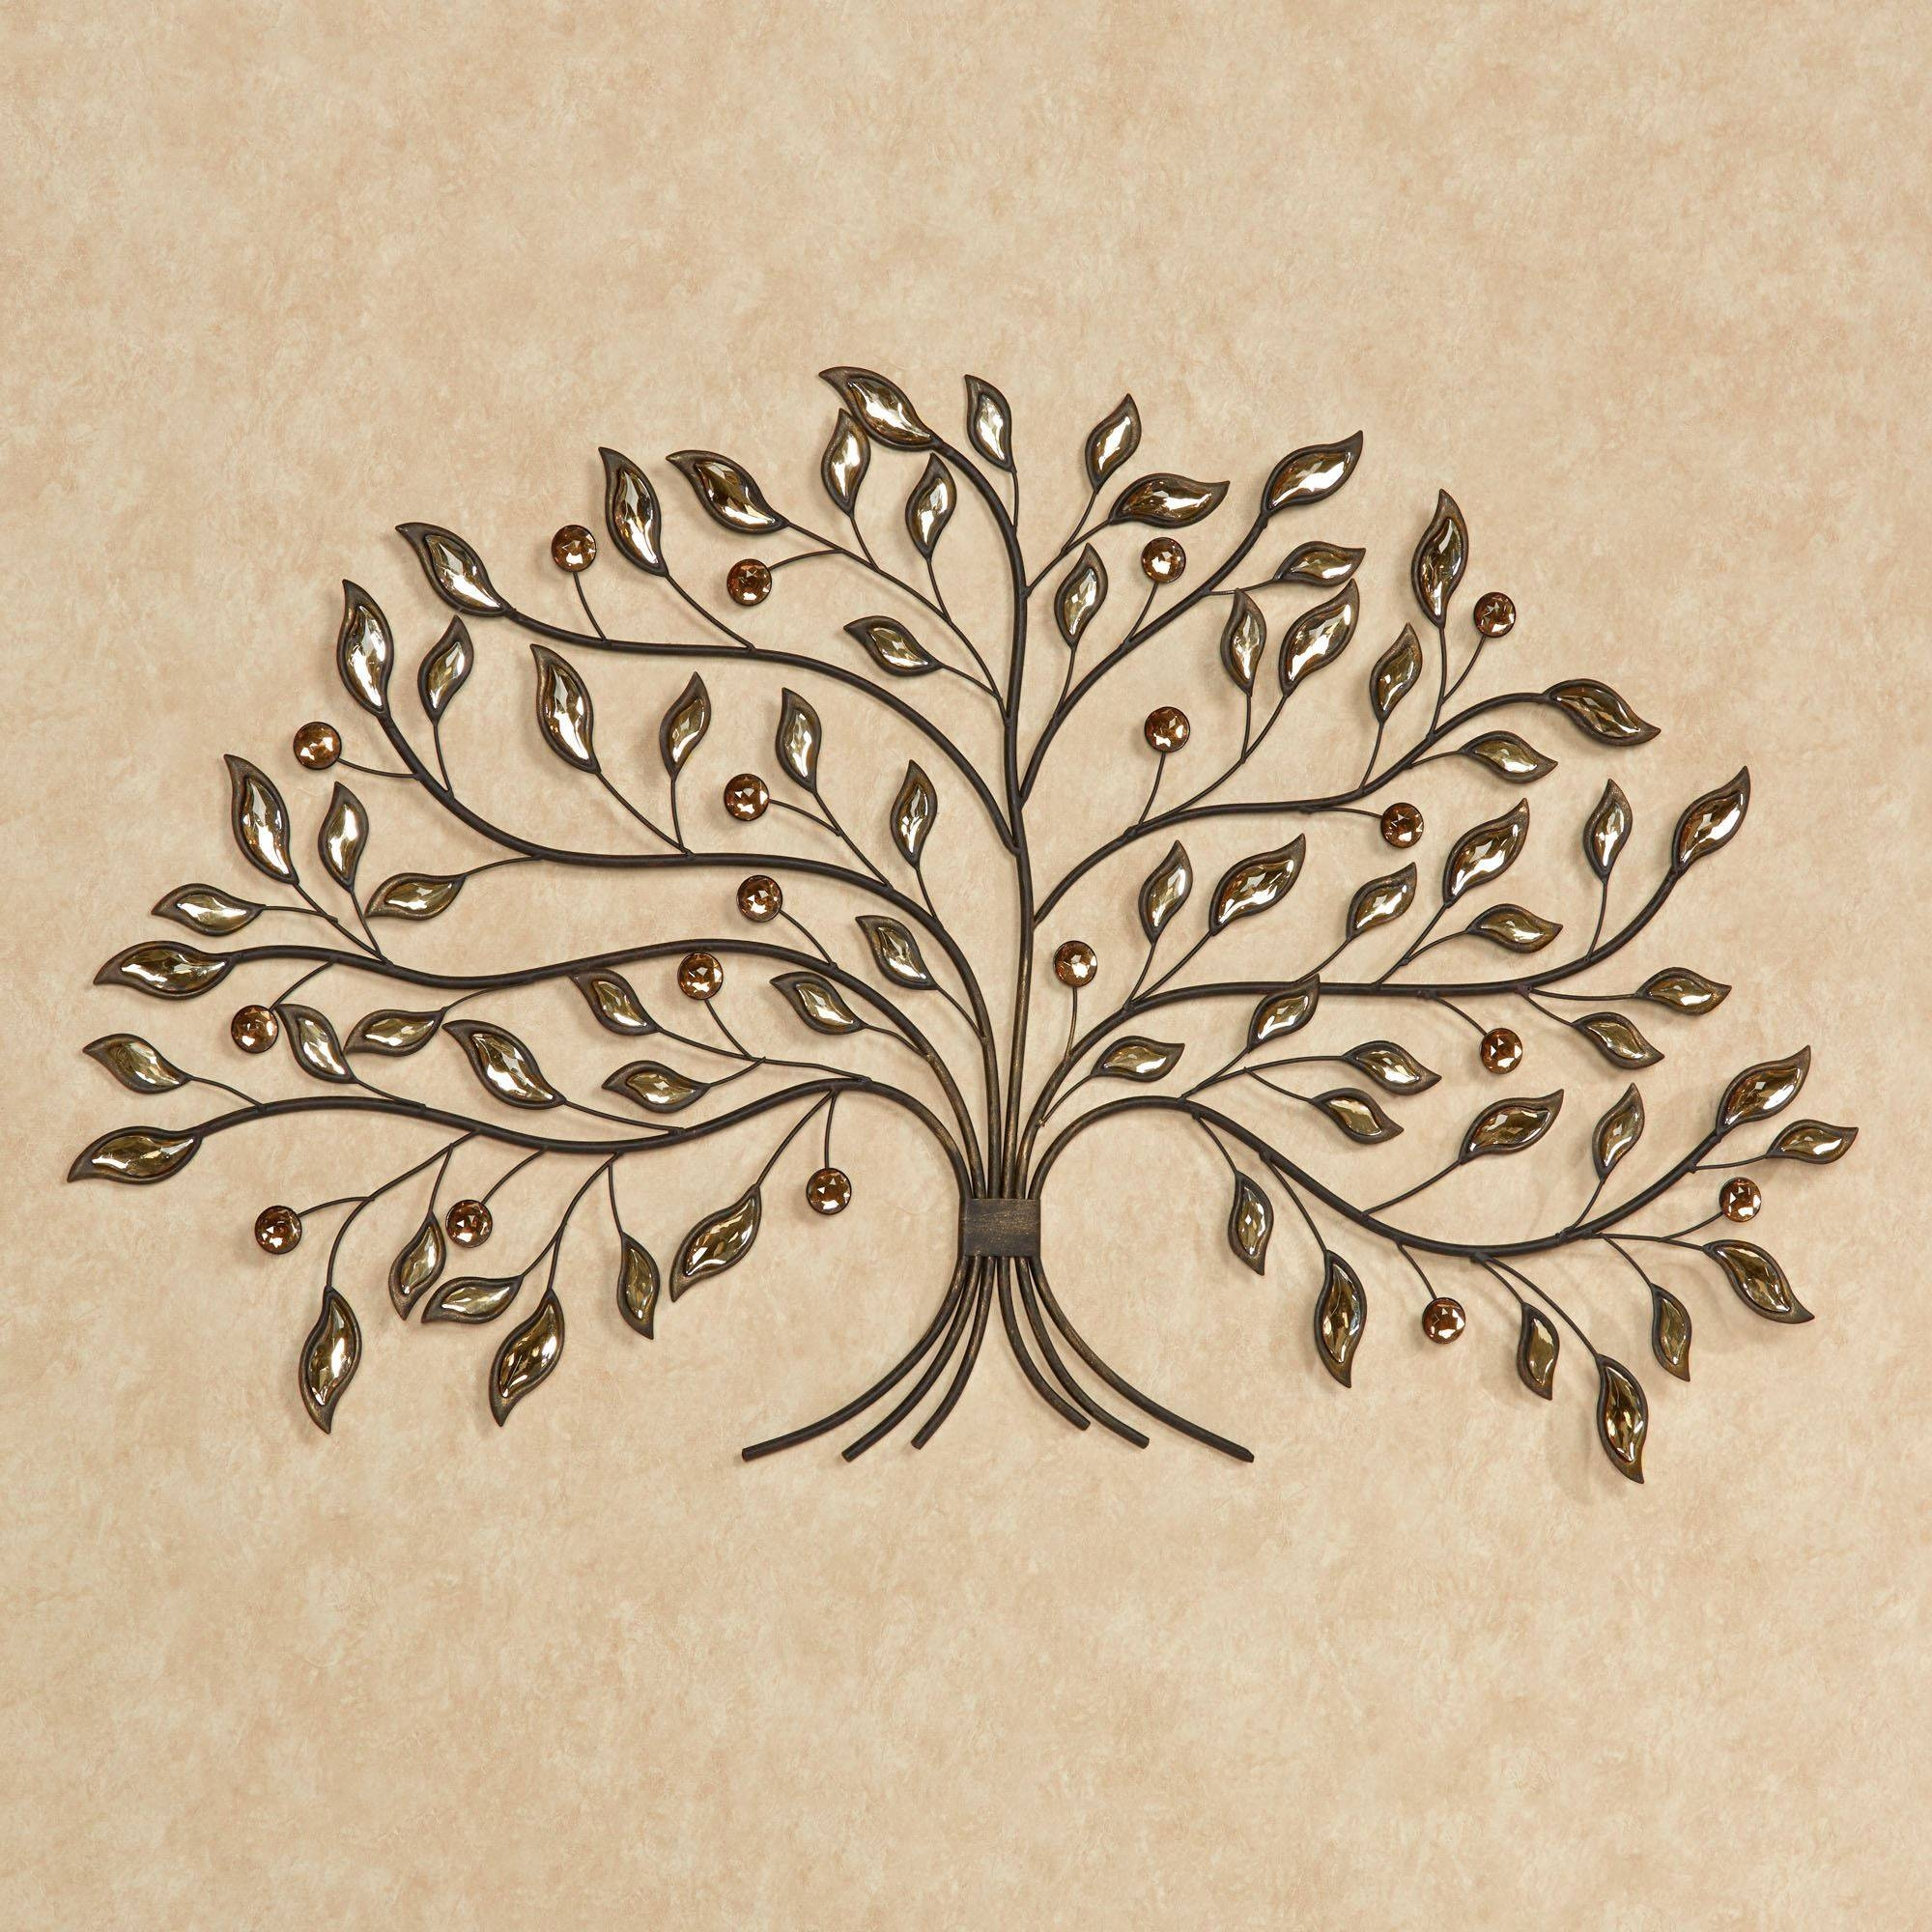 Alexandra Vining Gem Tree Metal Wall Art Inside Most Current Metal Wall Art Branches (View 14 of 20)